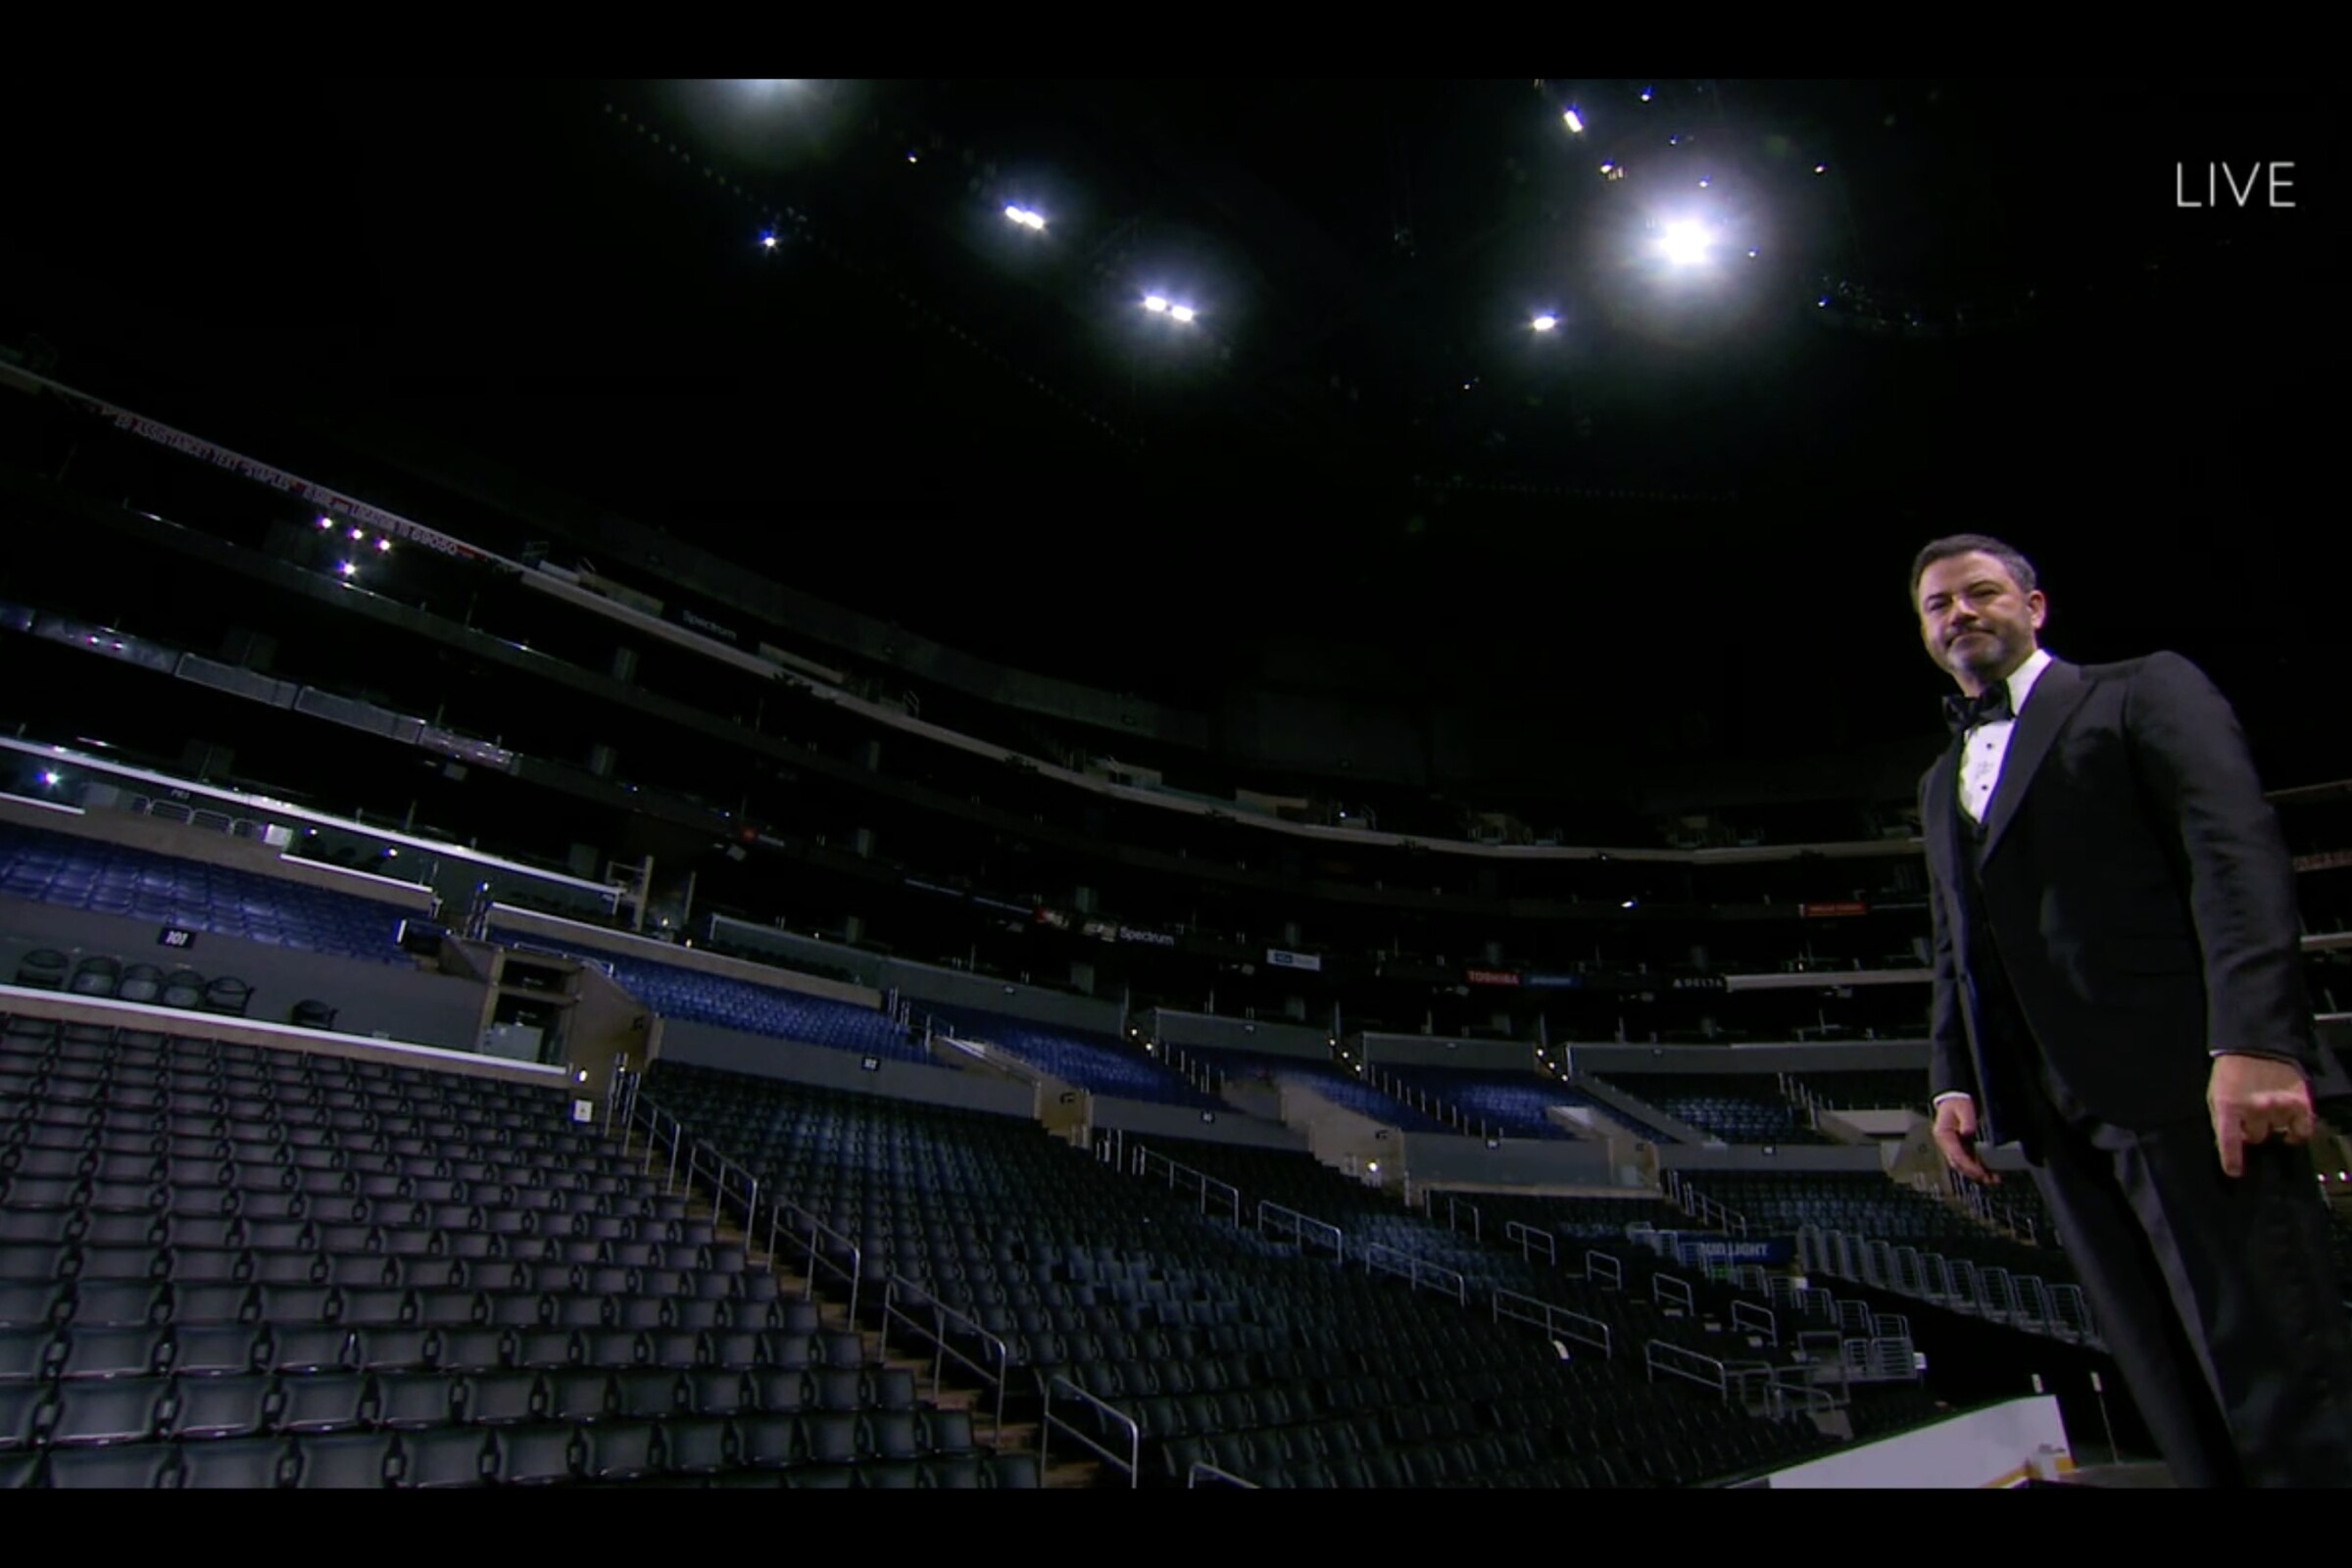 Jimmy Kimmel hosts the 72nd Emmy Awards at an empty Staples Center.